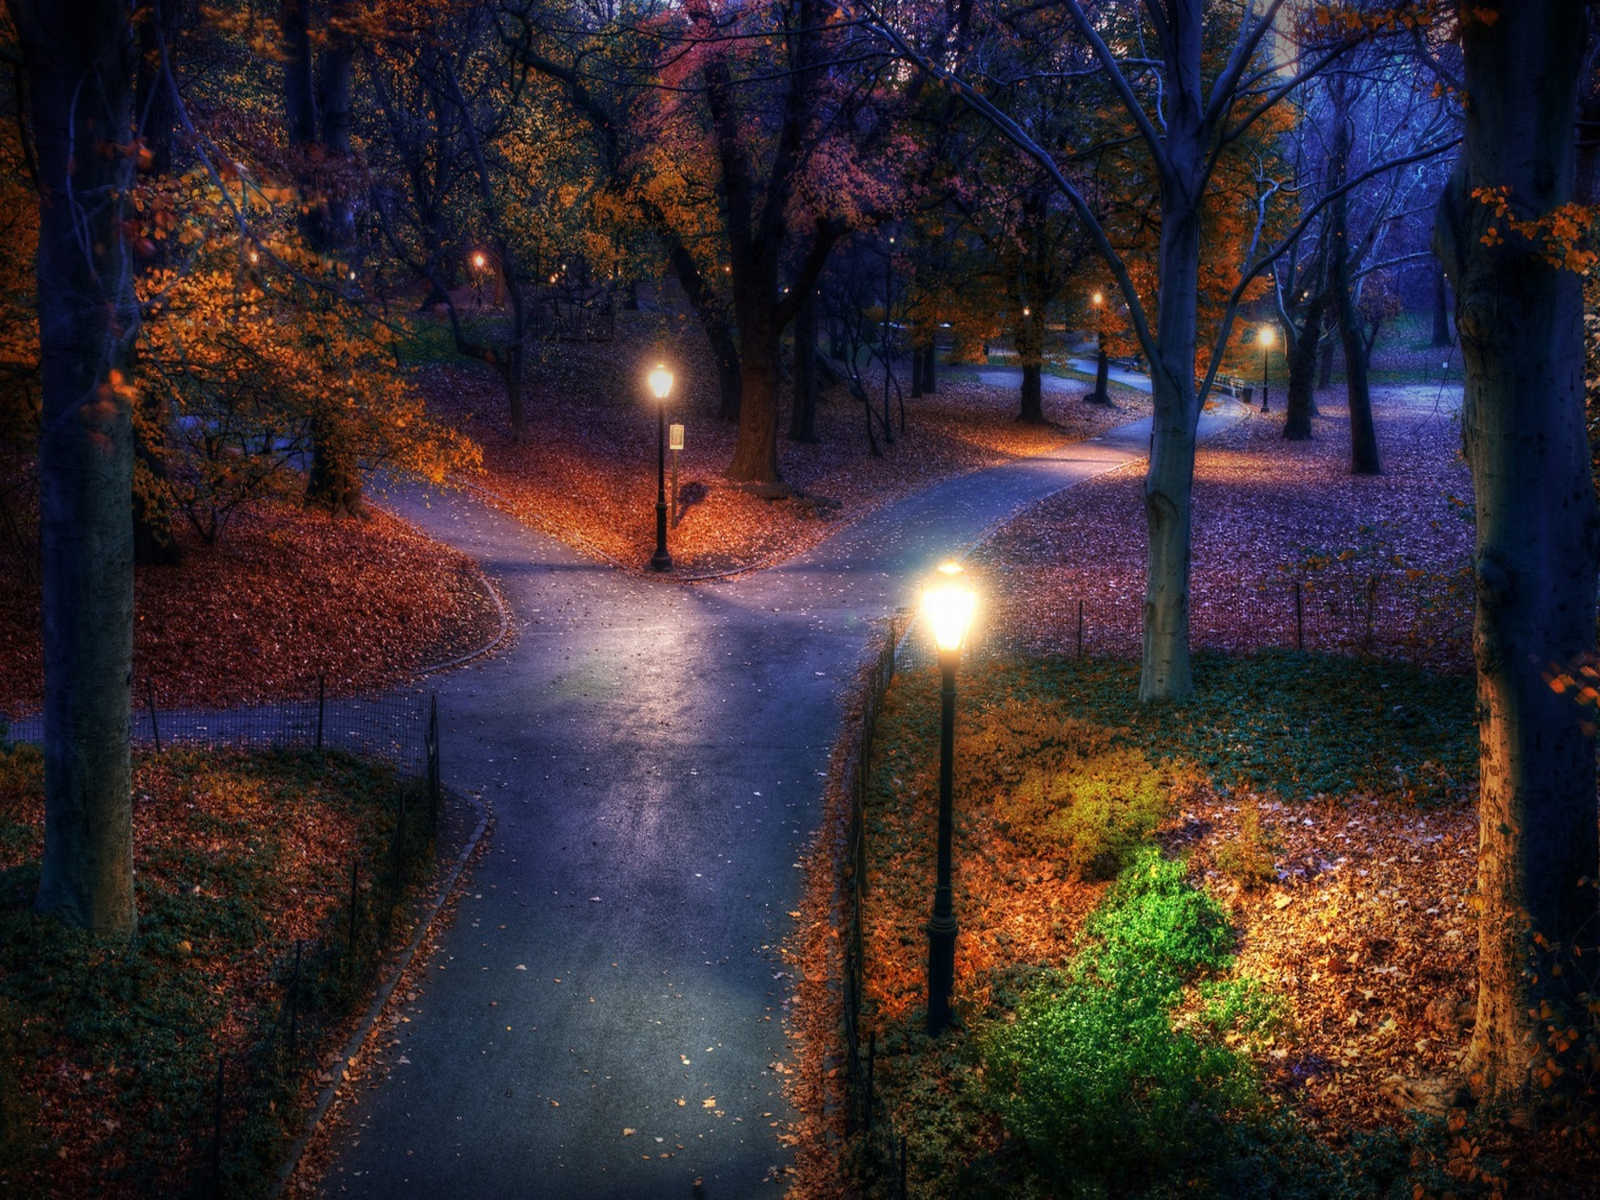 Autumn in the Park - Autumn Wallpaper (25517309) - Fanpop fanclubs